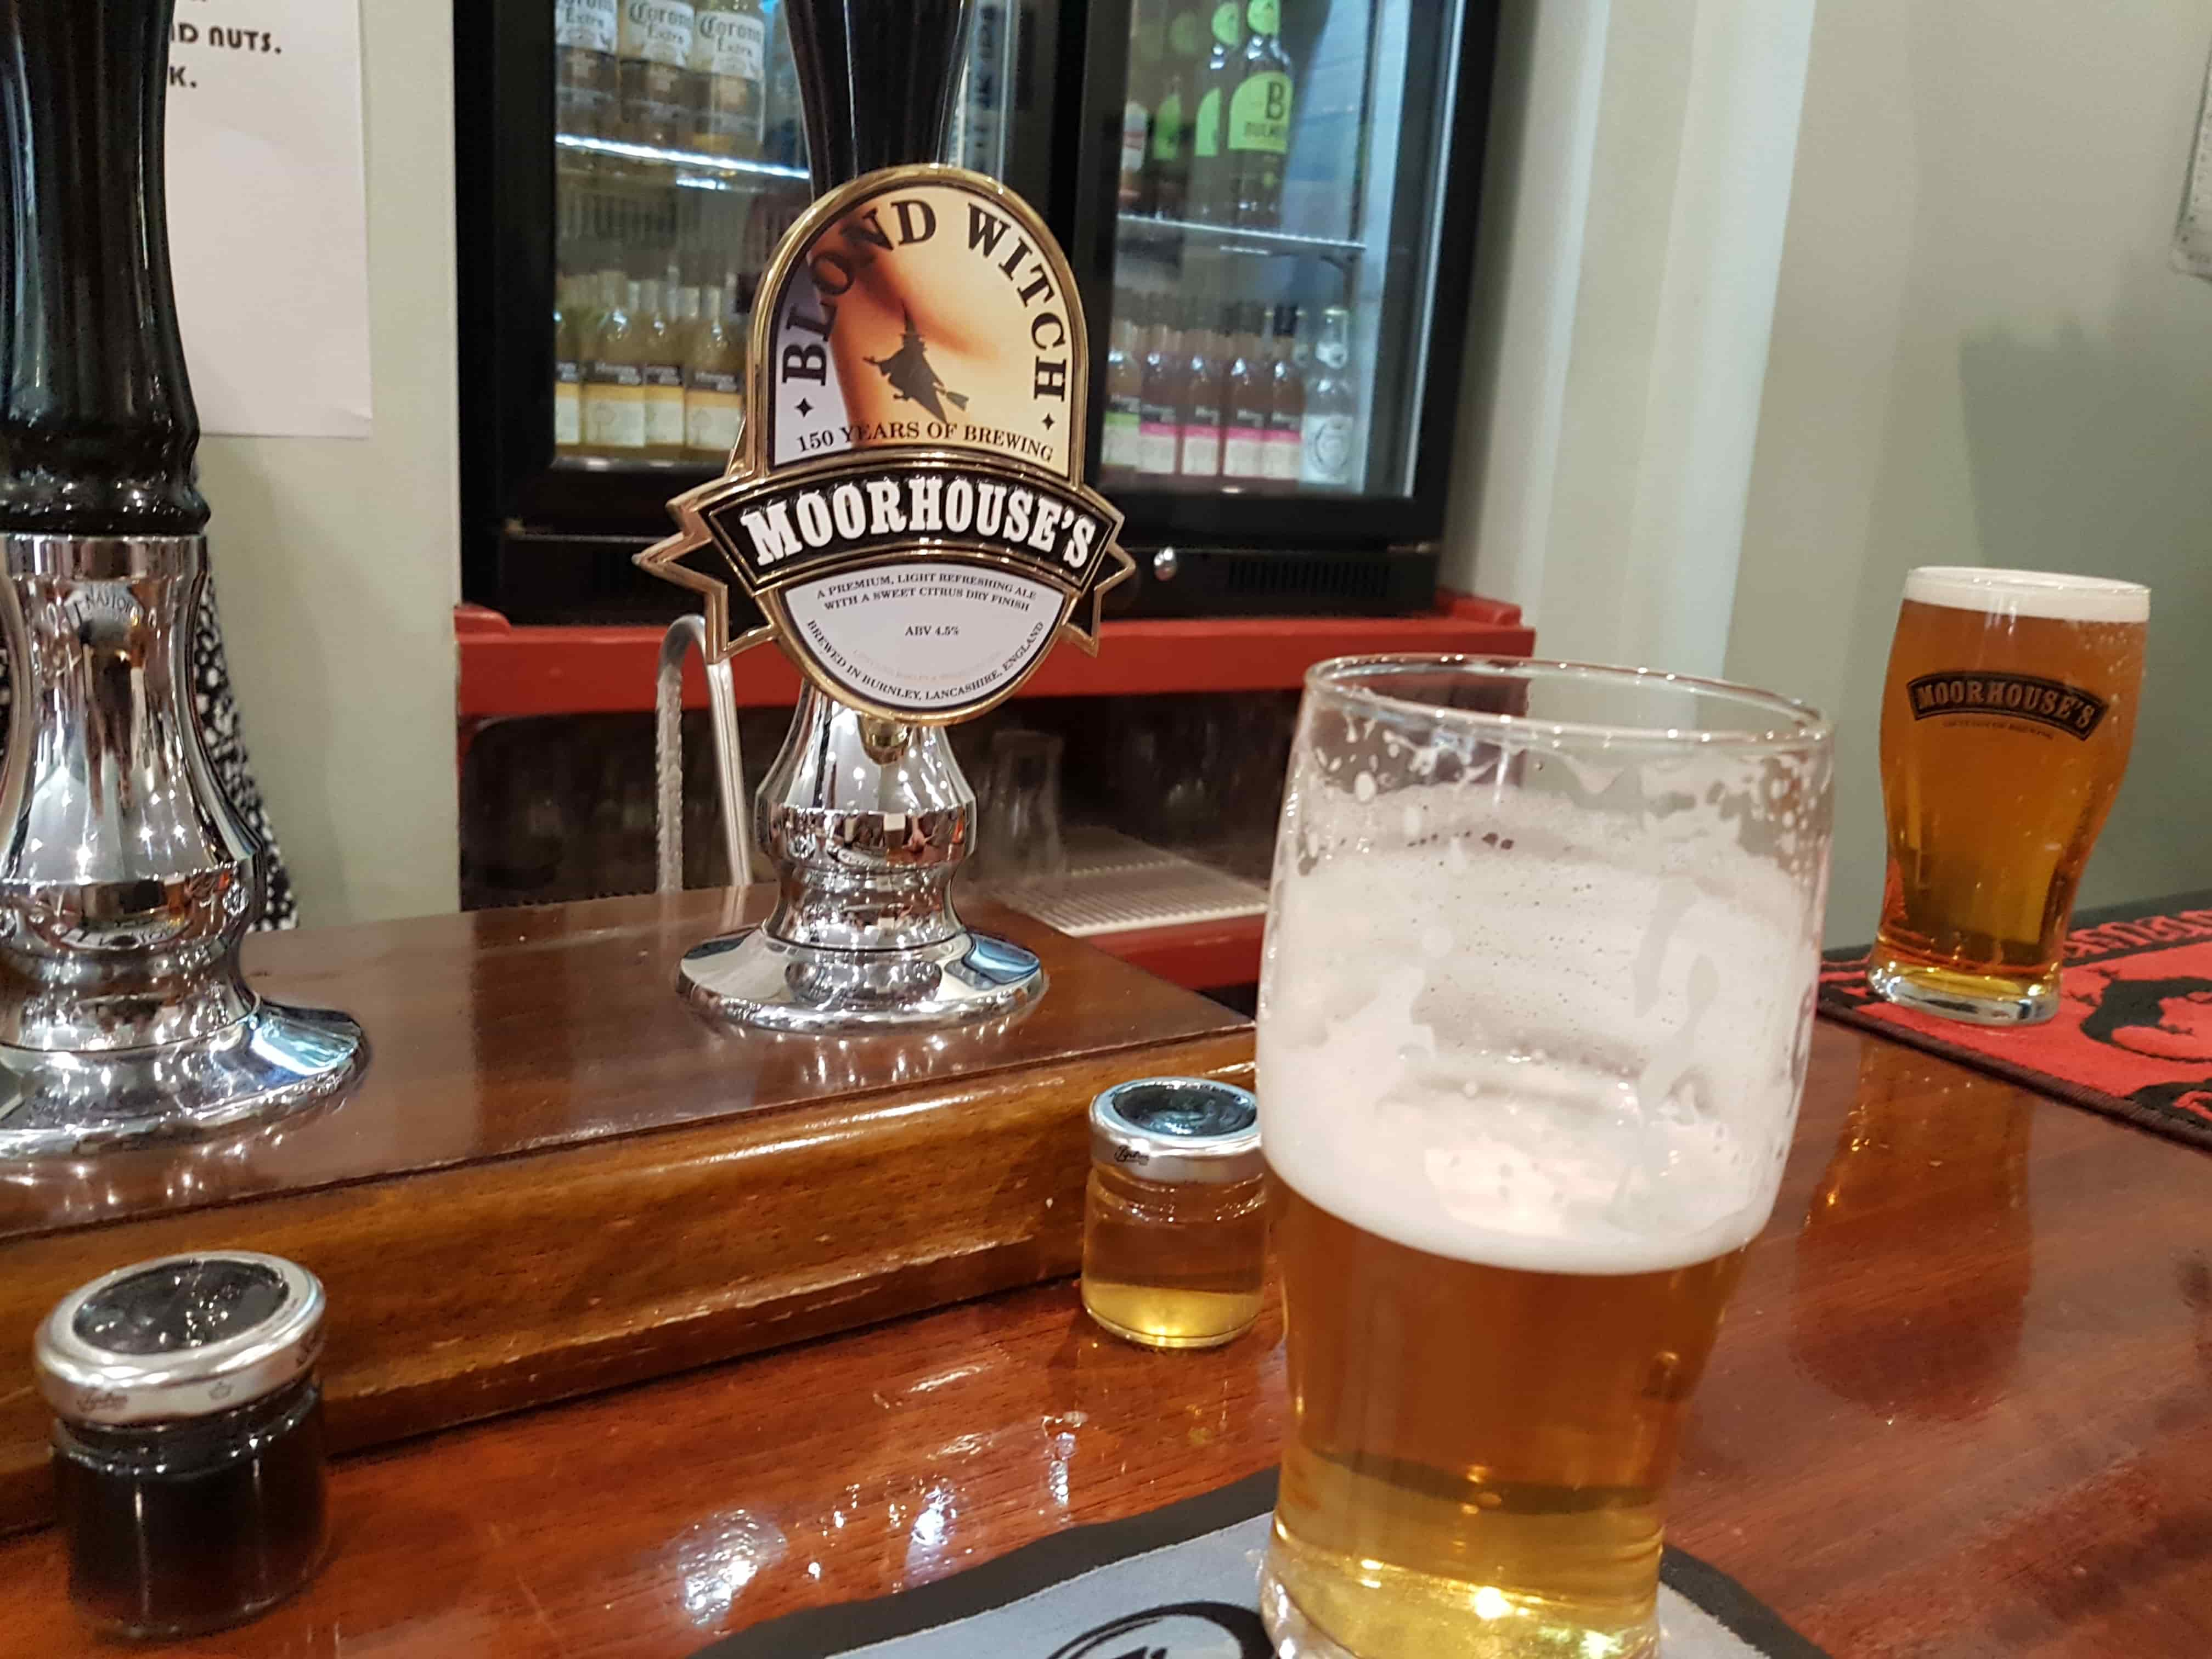 Visiting The Micropubs of Skipton